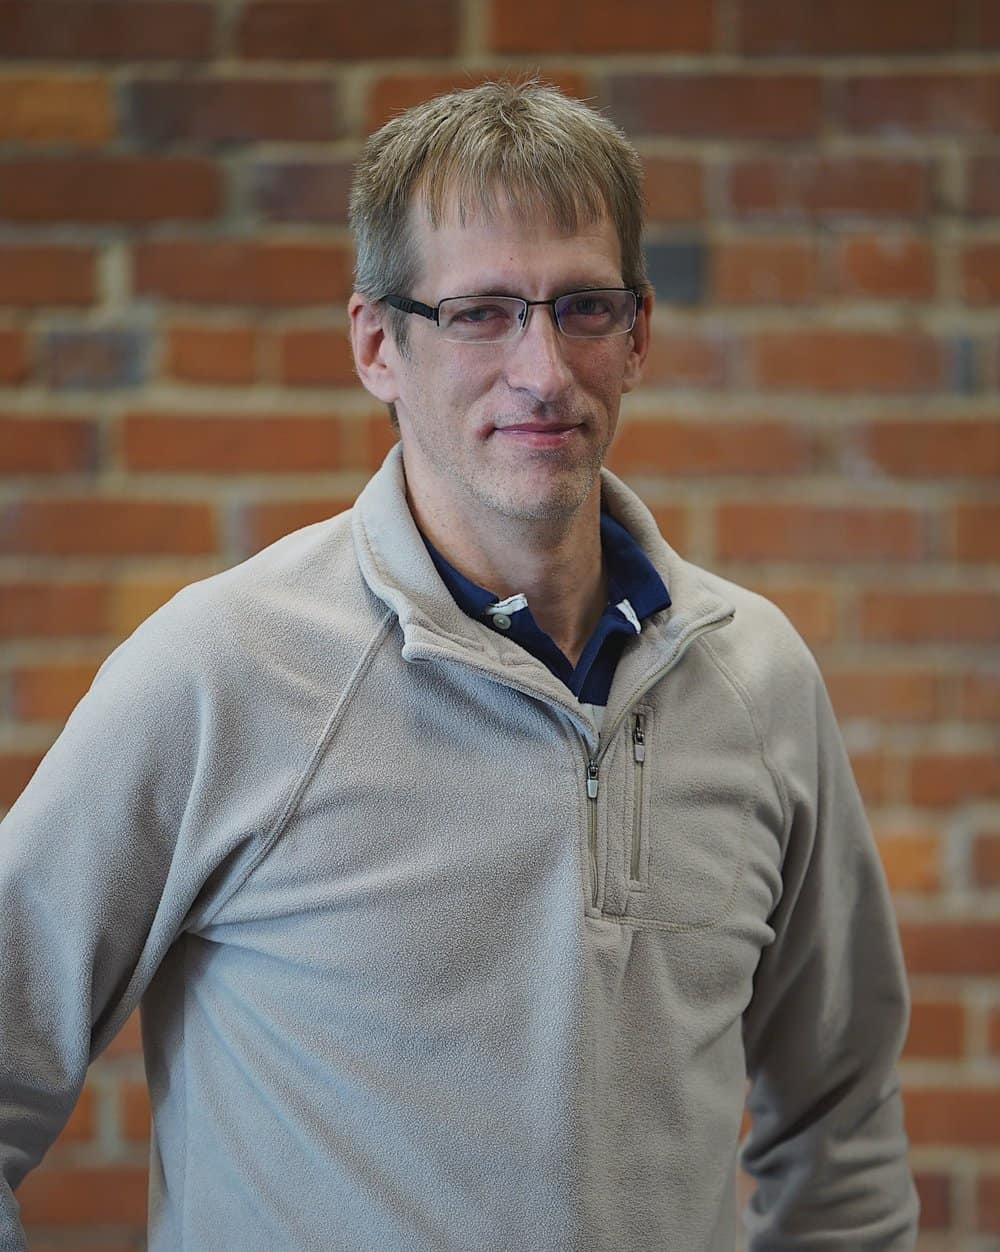 Sam Tibbs, a energy and transportation economist joins the FreightWaves team